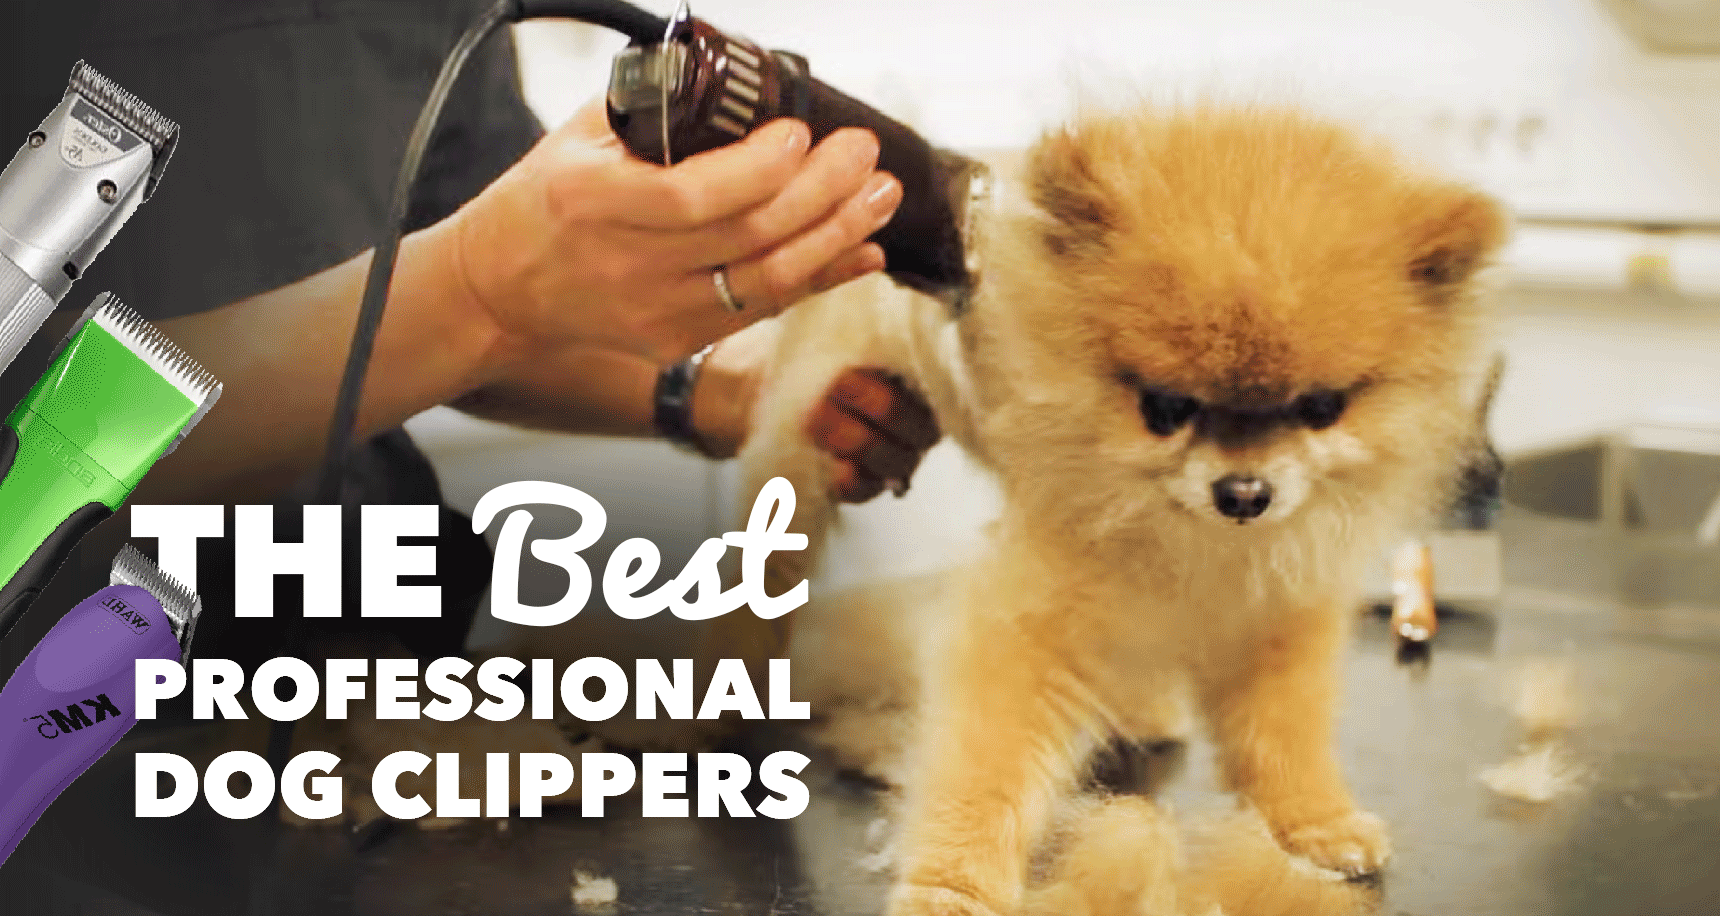 6 Best Dog Clippers For Professionals 2018 Buying Guide